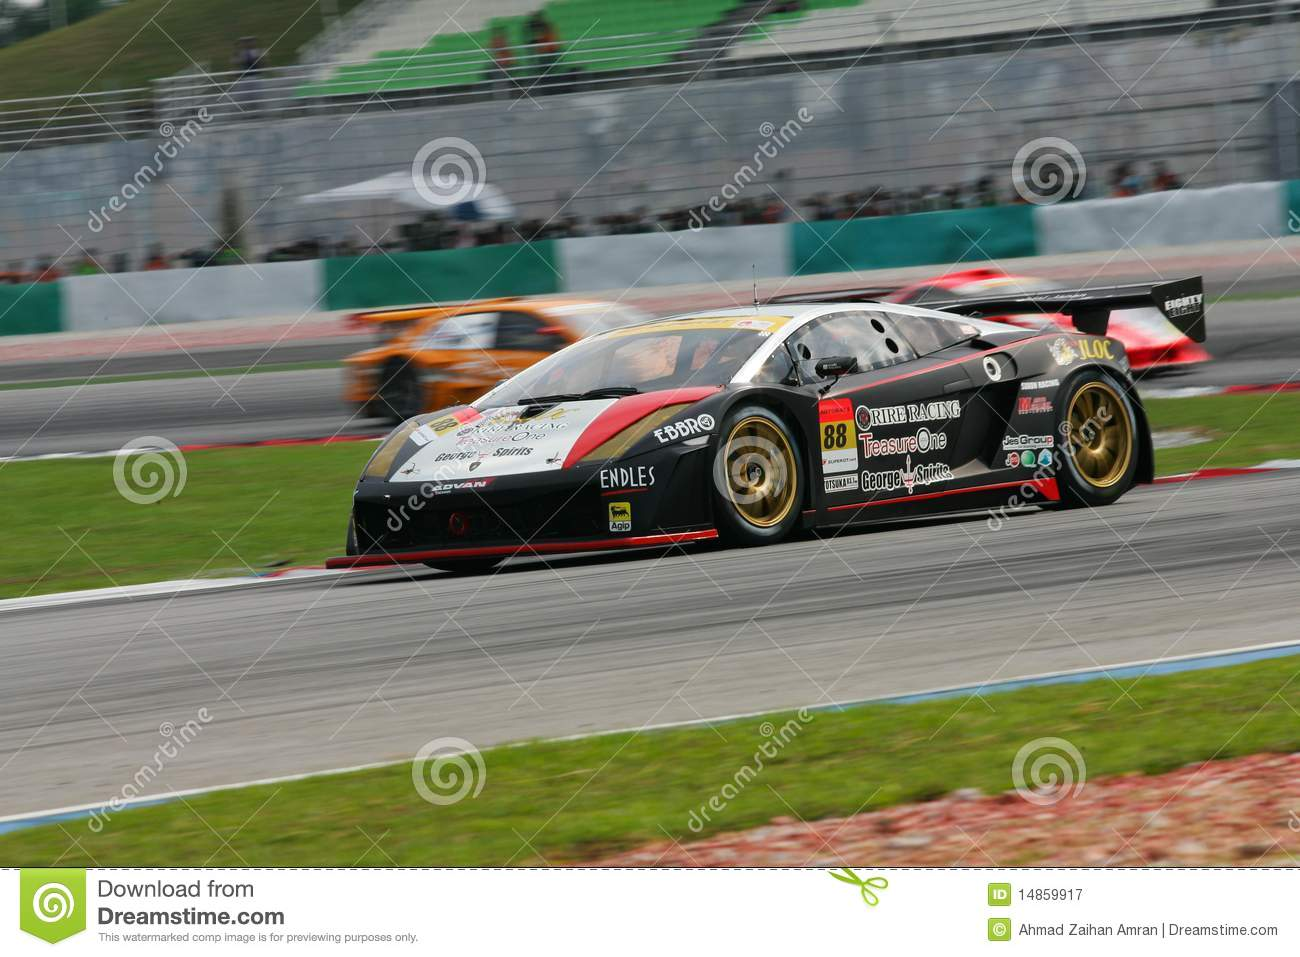 Super GT Championship in action